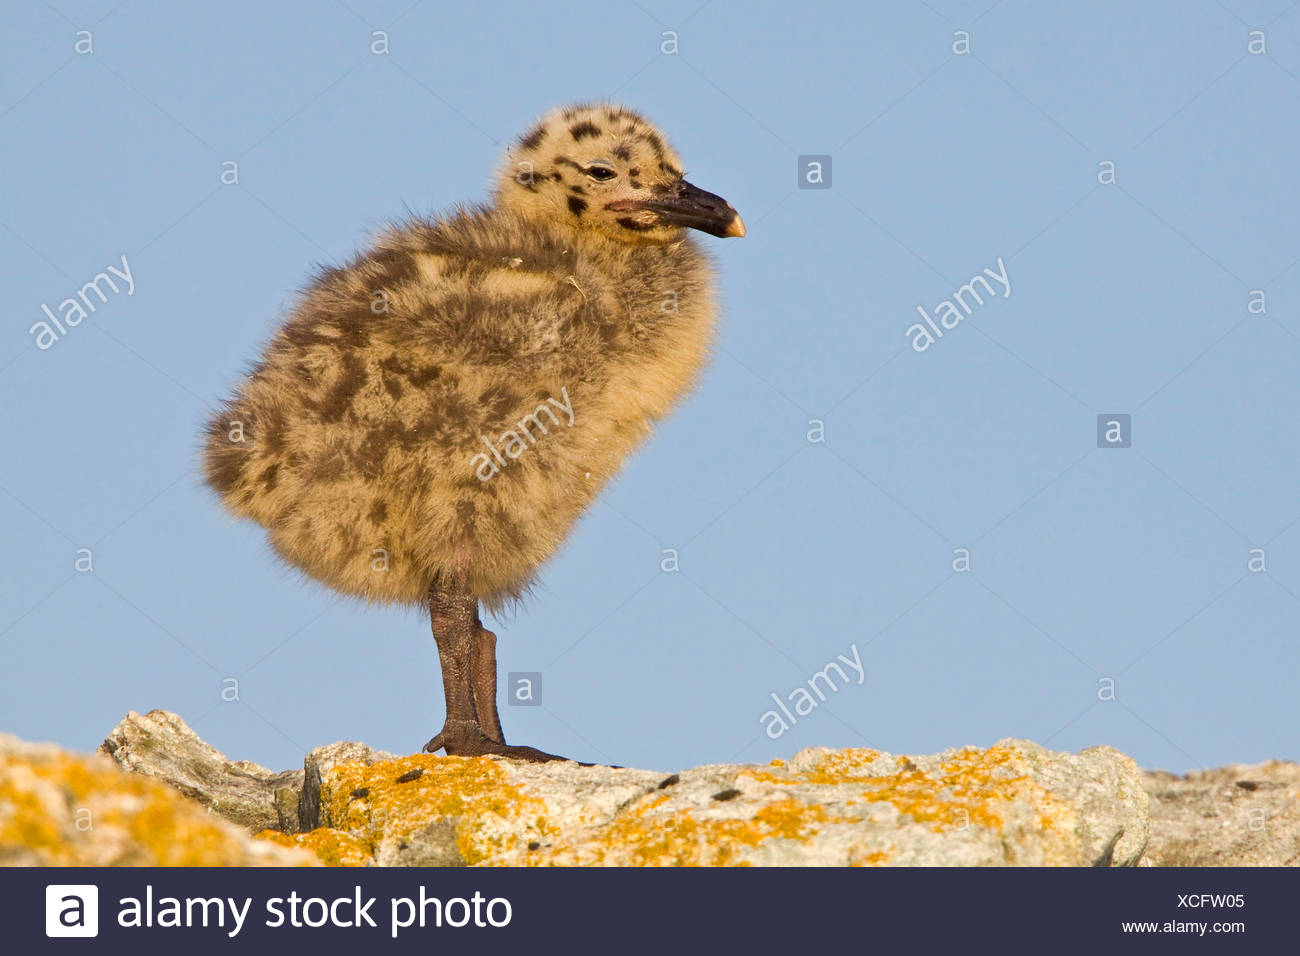 Glaucous-winged Gull (Larus glaucescens) perched on a rock in Victoria, BC, Canada. - Stock Image